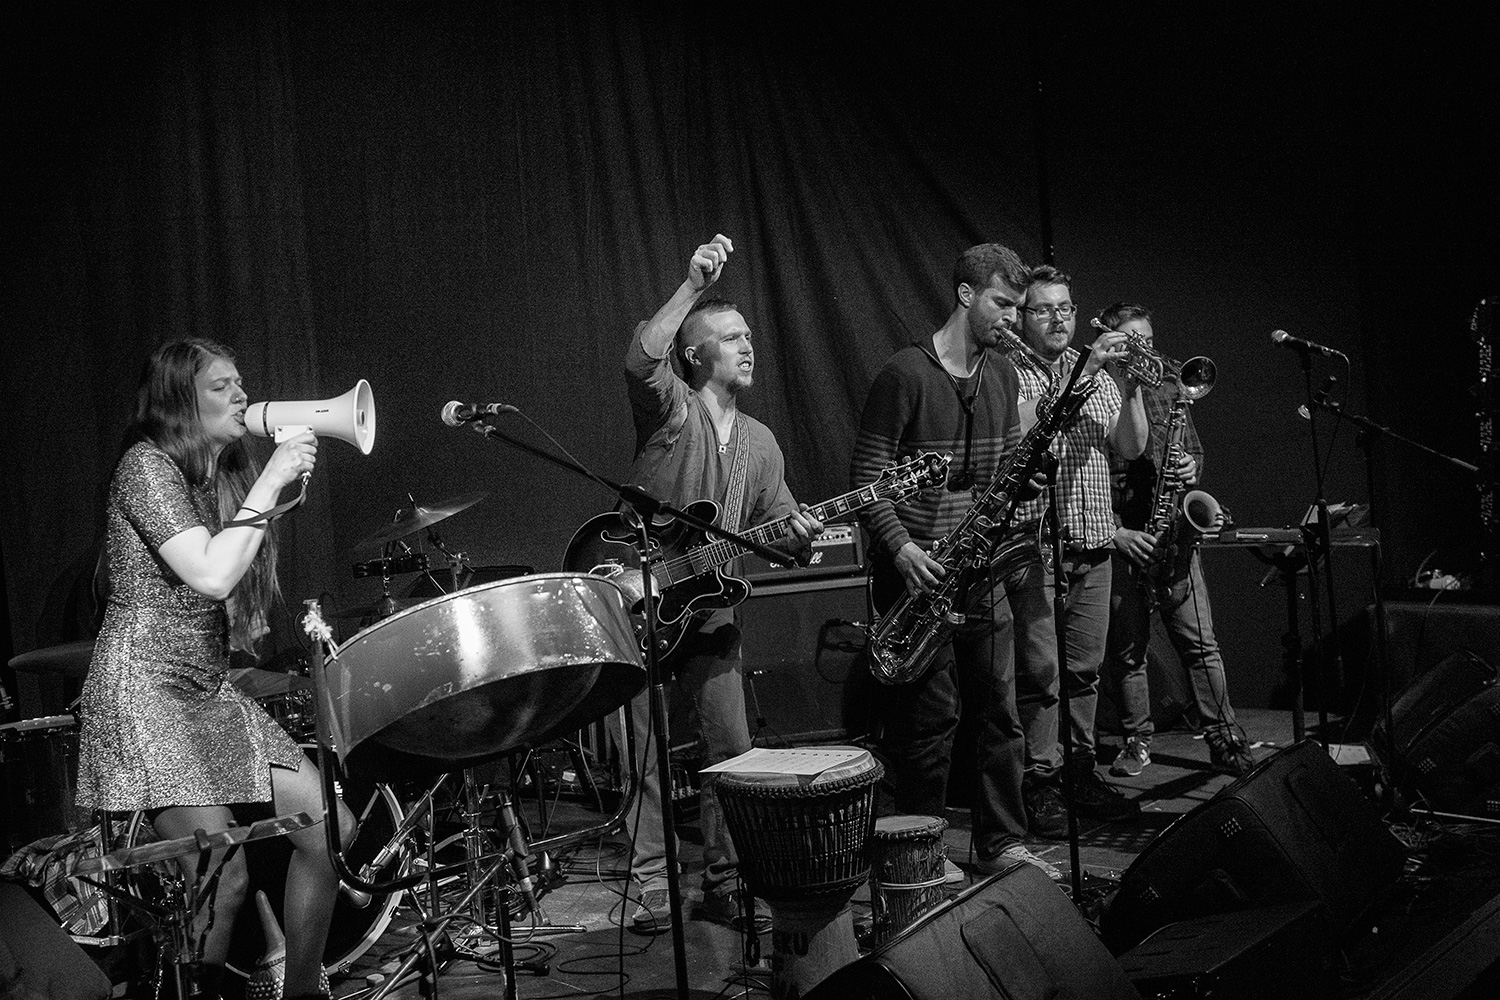 28th April 2017Ponyland hail from from across Cumbria and Newcastle, and play samba reggae, drum 'n' bass, afro-beat & jazz. Here they are supporting KOG & The Zongo Brigade